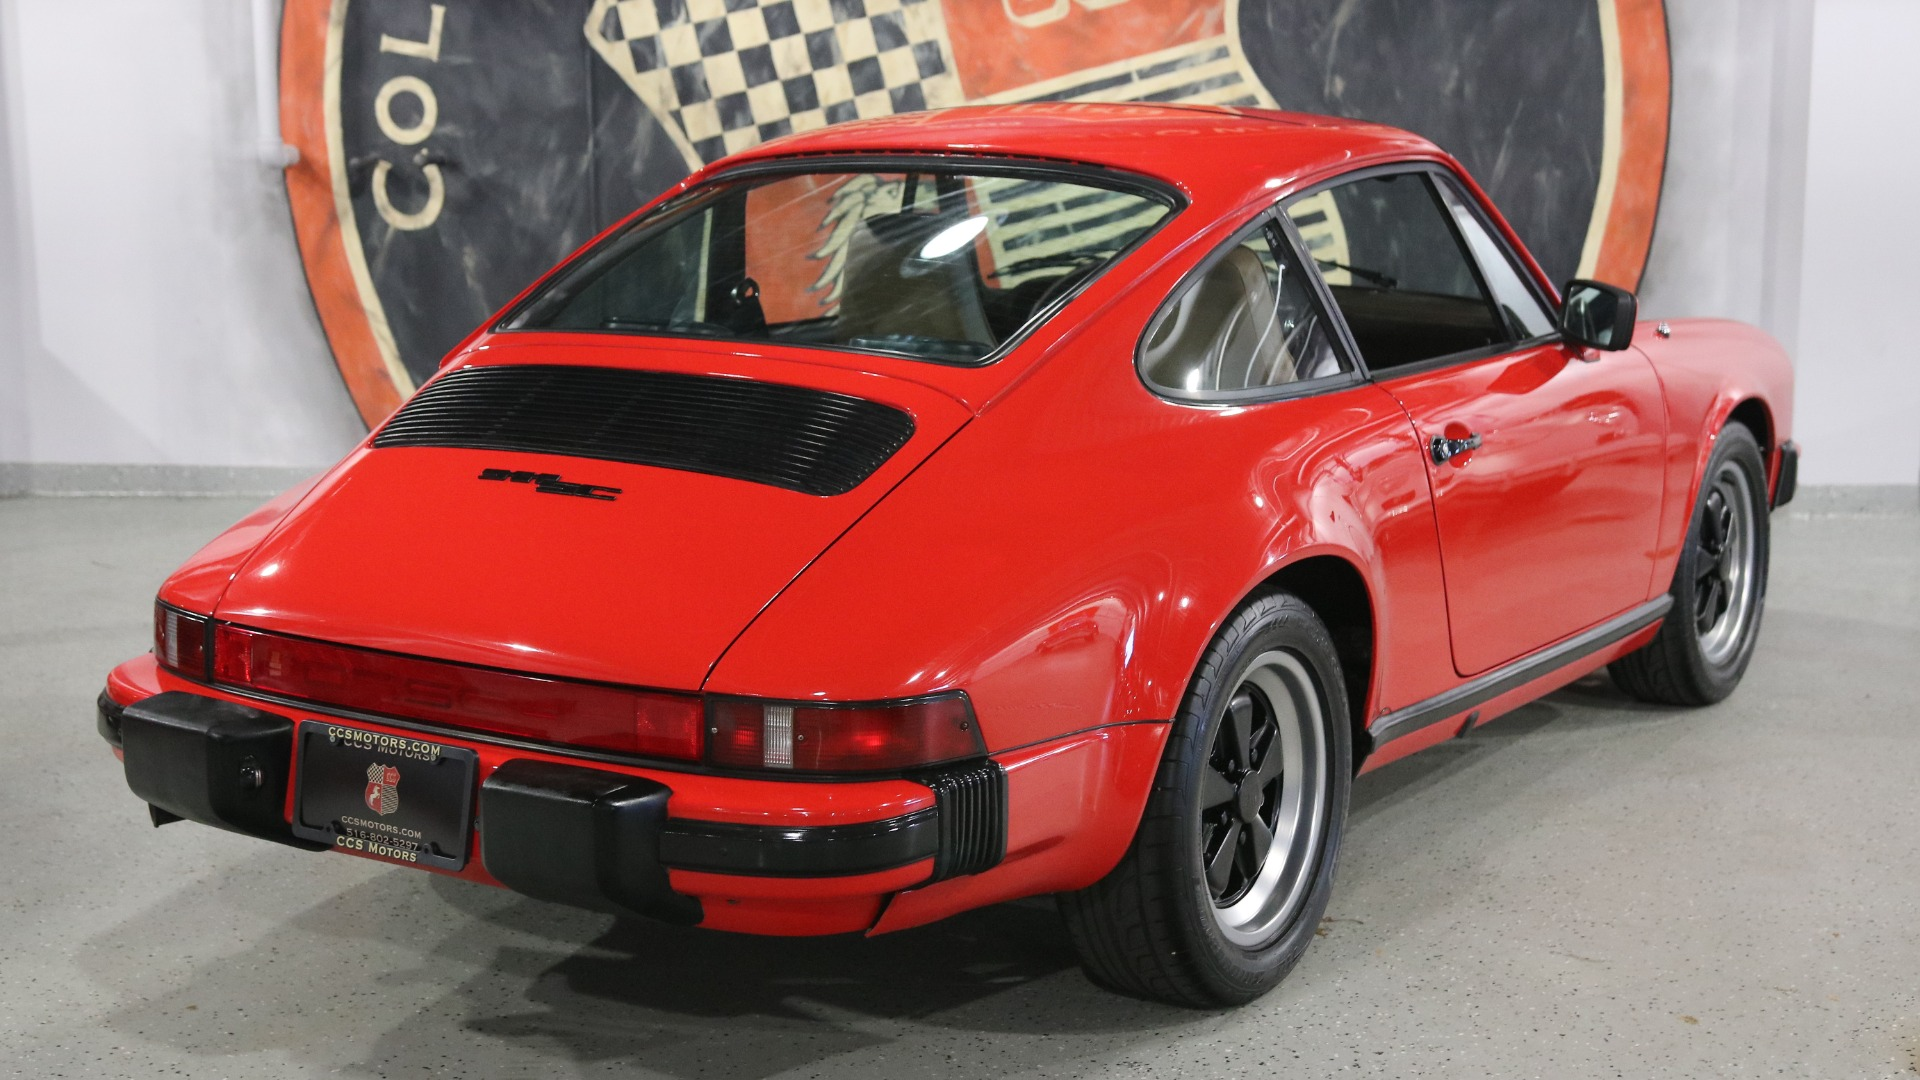 1980 porsche 911 sc stock 1255x for sale near oyster bay. Black Bedroom Furniture Sets. Home Design Ideas